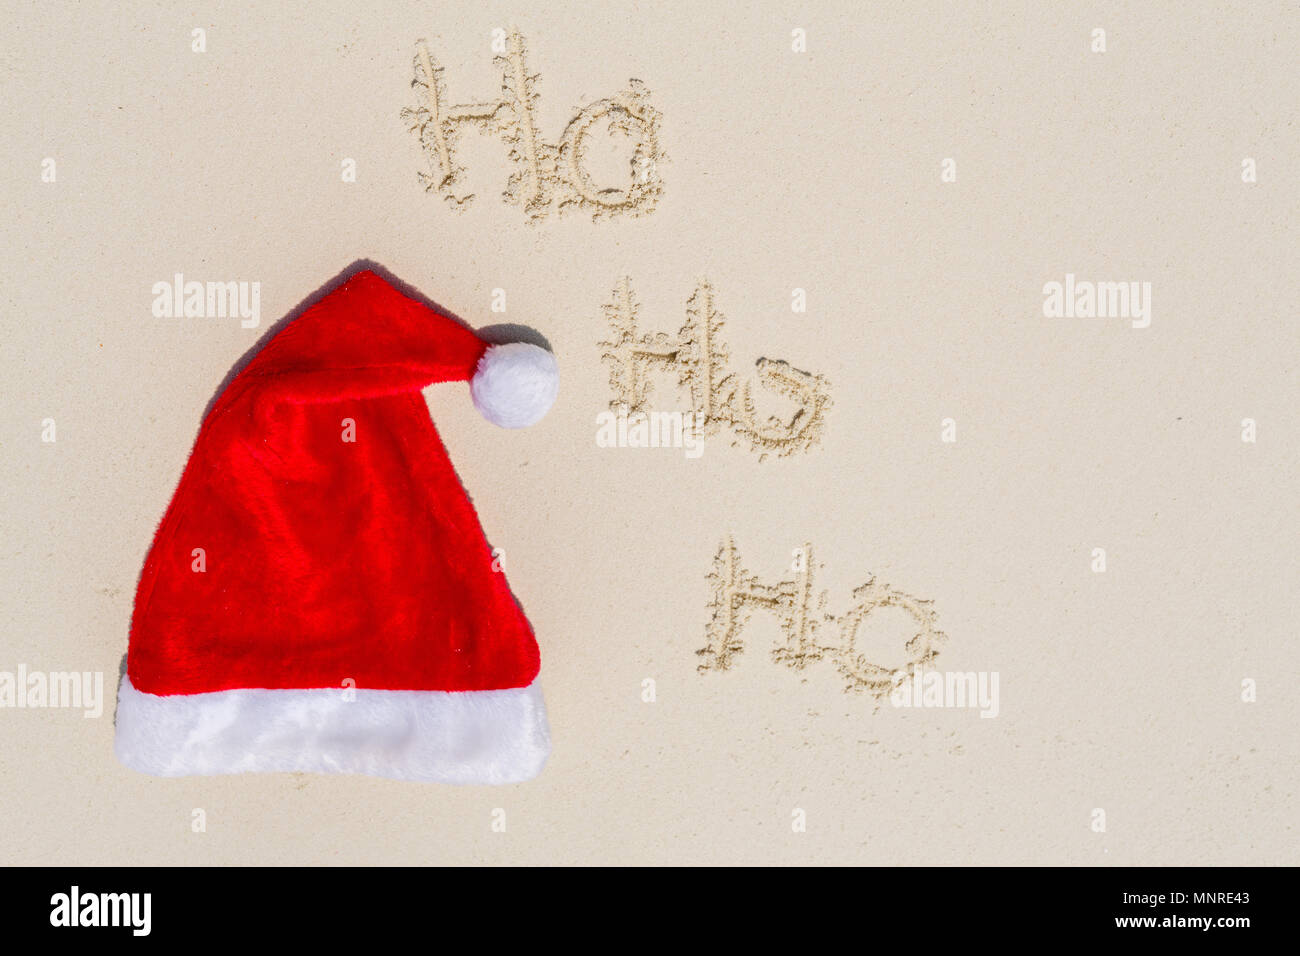 Santa hat on a white sand tropical beach - Stock Image